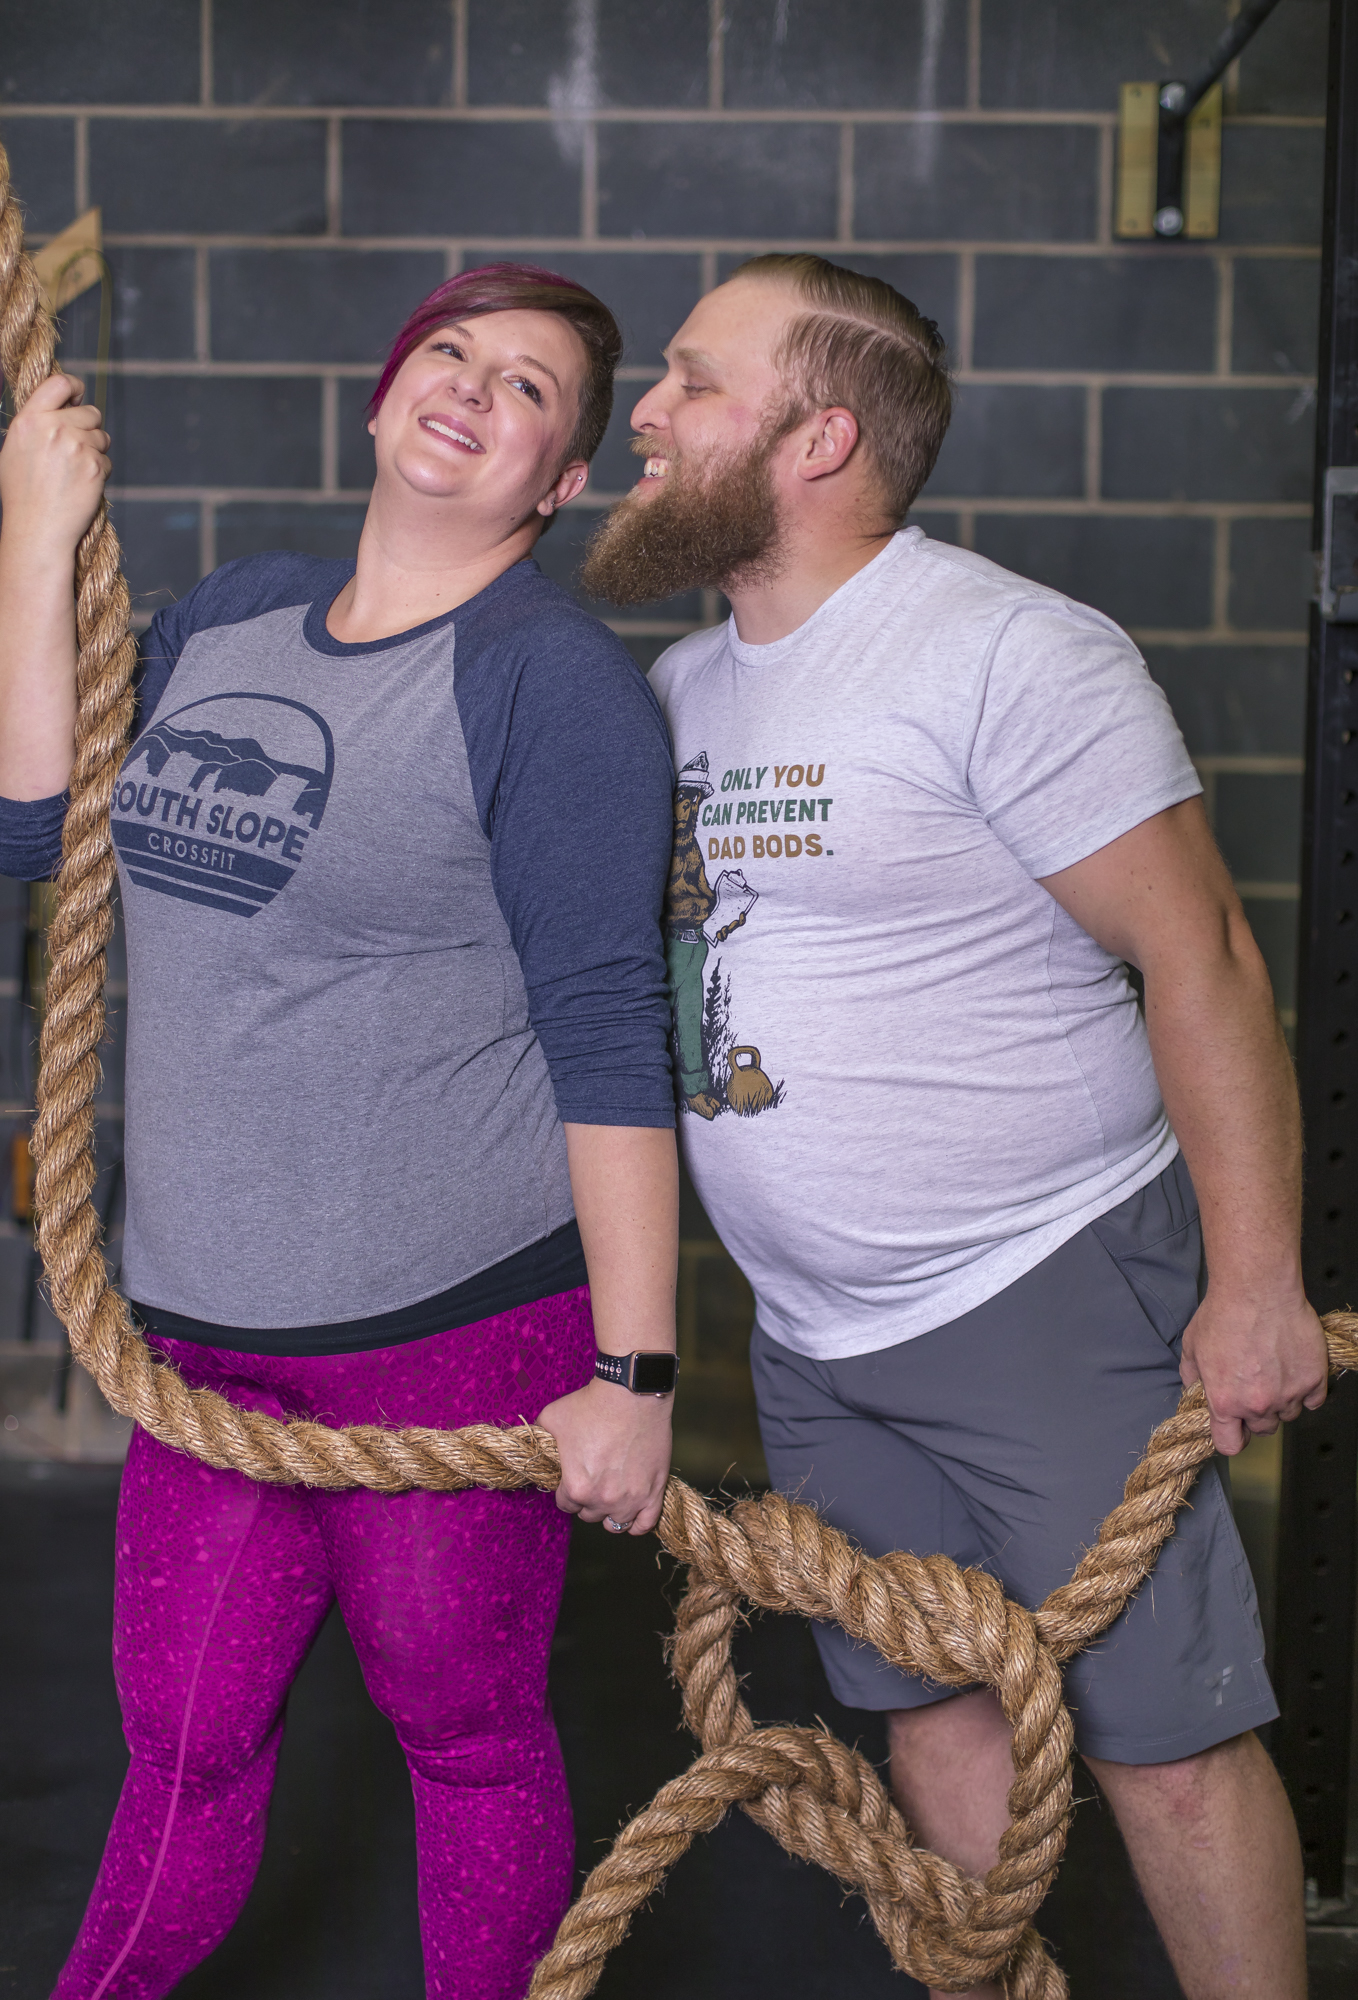 Jessica and Derek Gym Engagement Photos_by Studio Misha Photography_BLOG-10.jpg